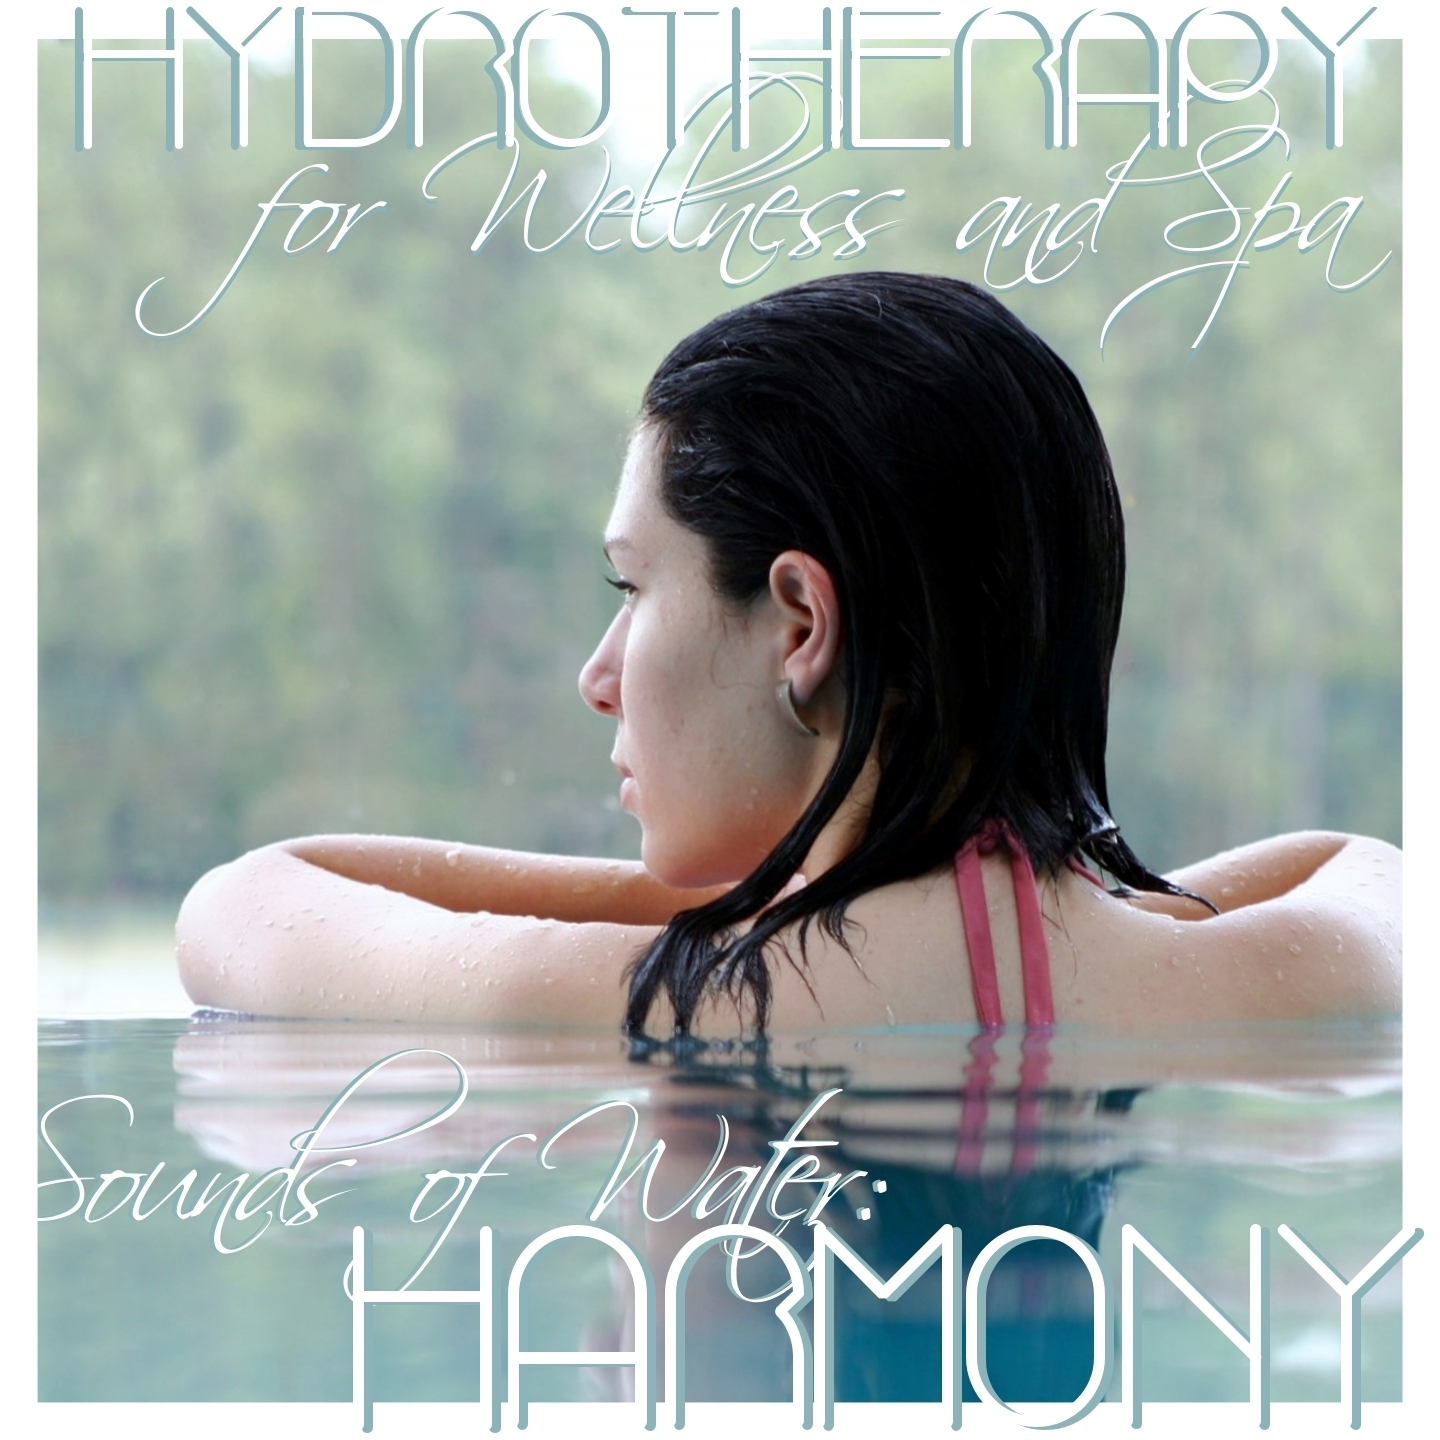 Harmony : Hydrotherapy for Wellness and Spa